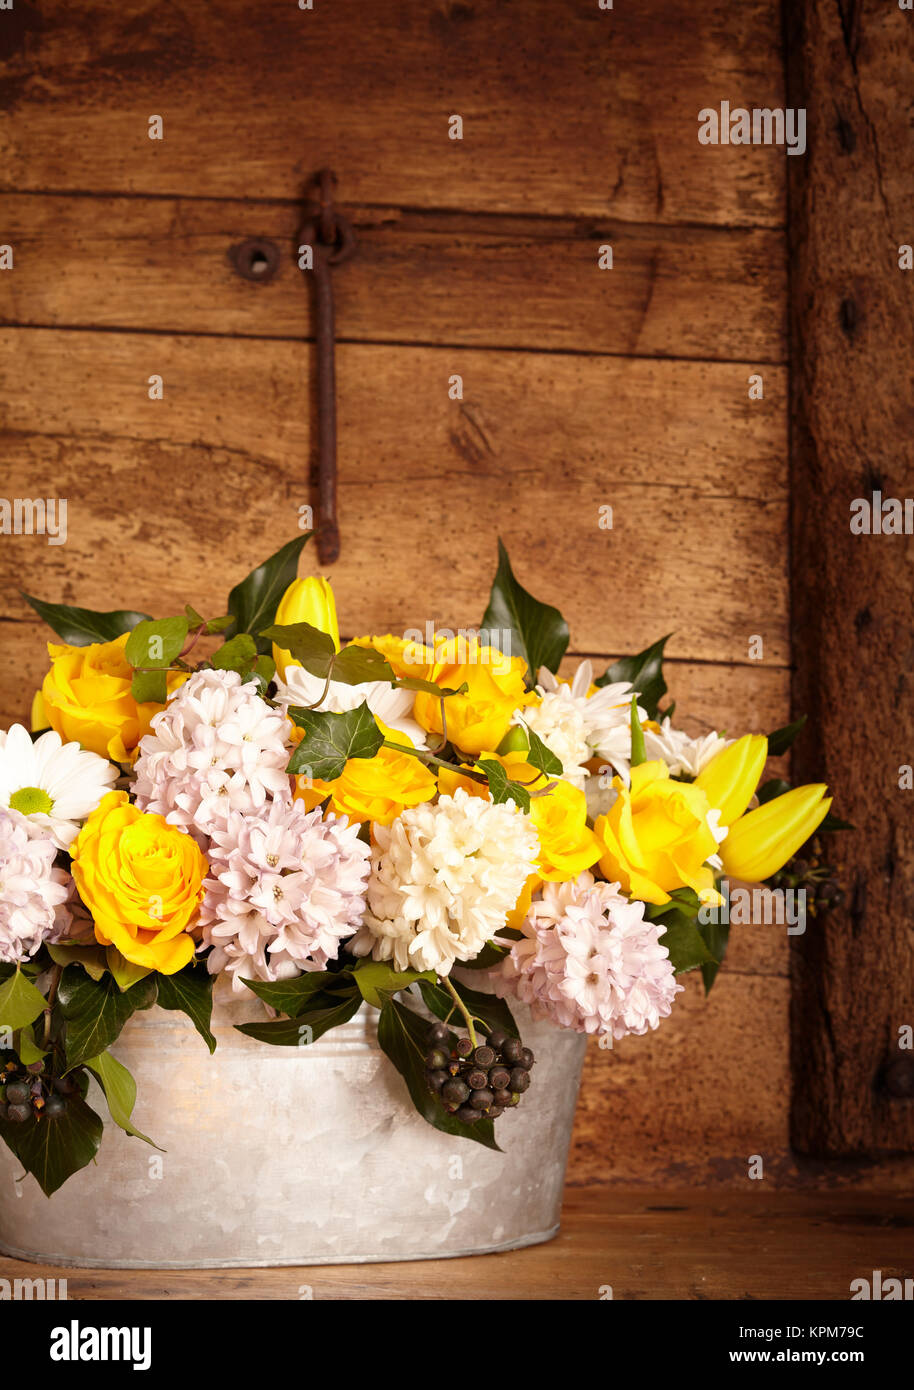 Group of beautiful white and yellow flowers in old galvanized steel bucket over rustic interior background - Stock Image